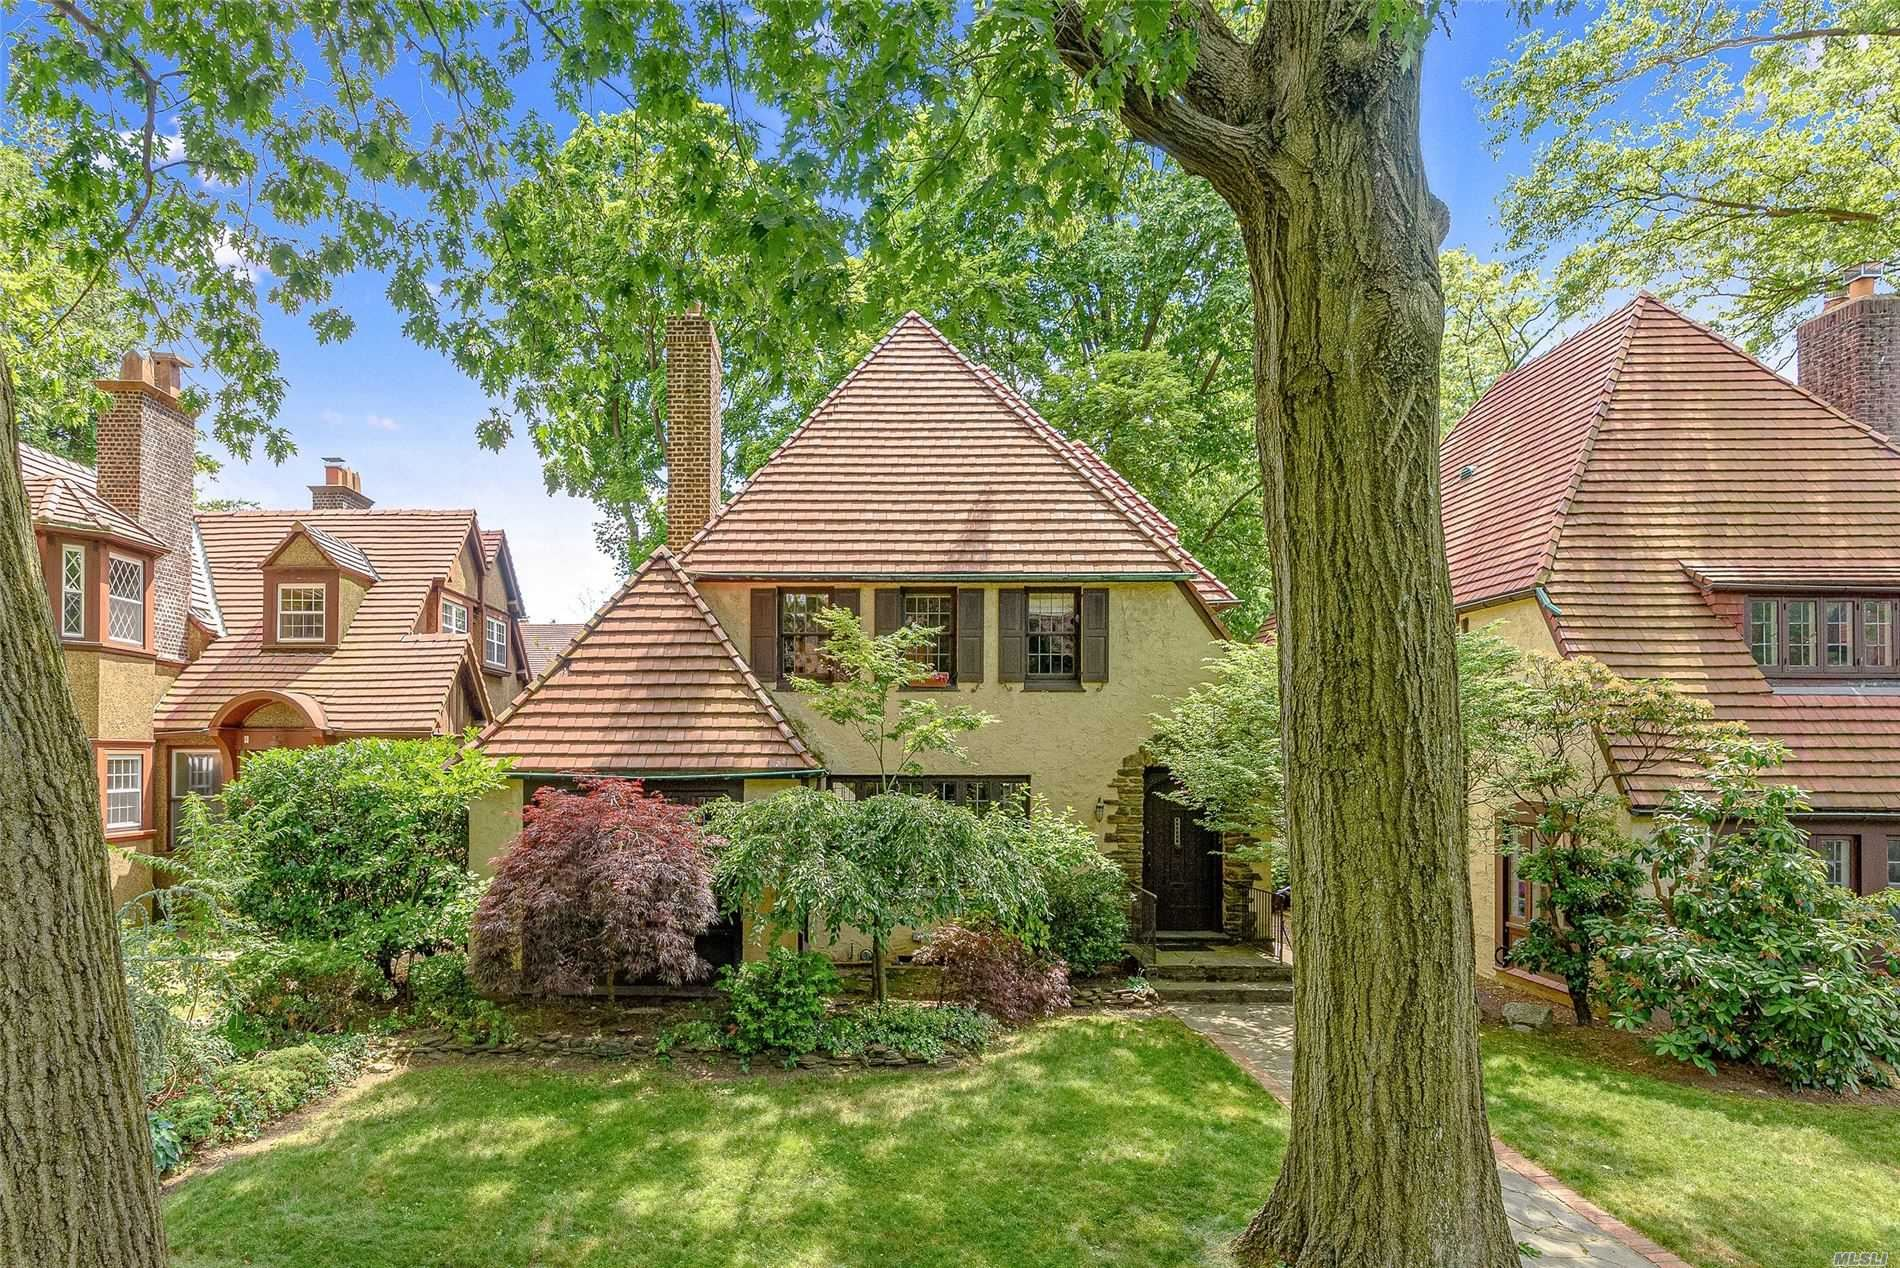 109 Whitson Street, Forest Hills, NY 11375 - MLS#: 3227325